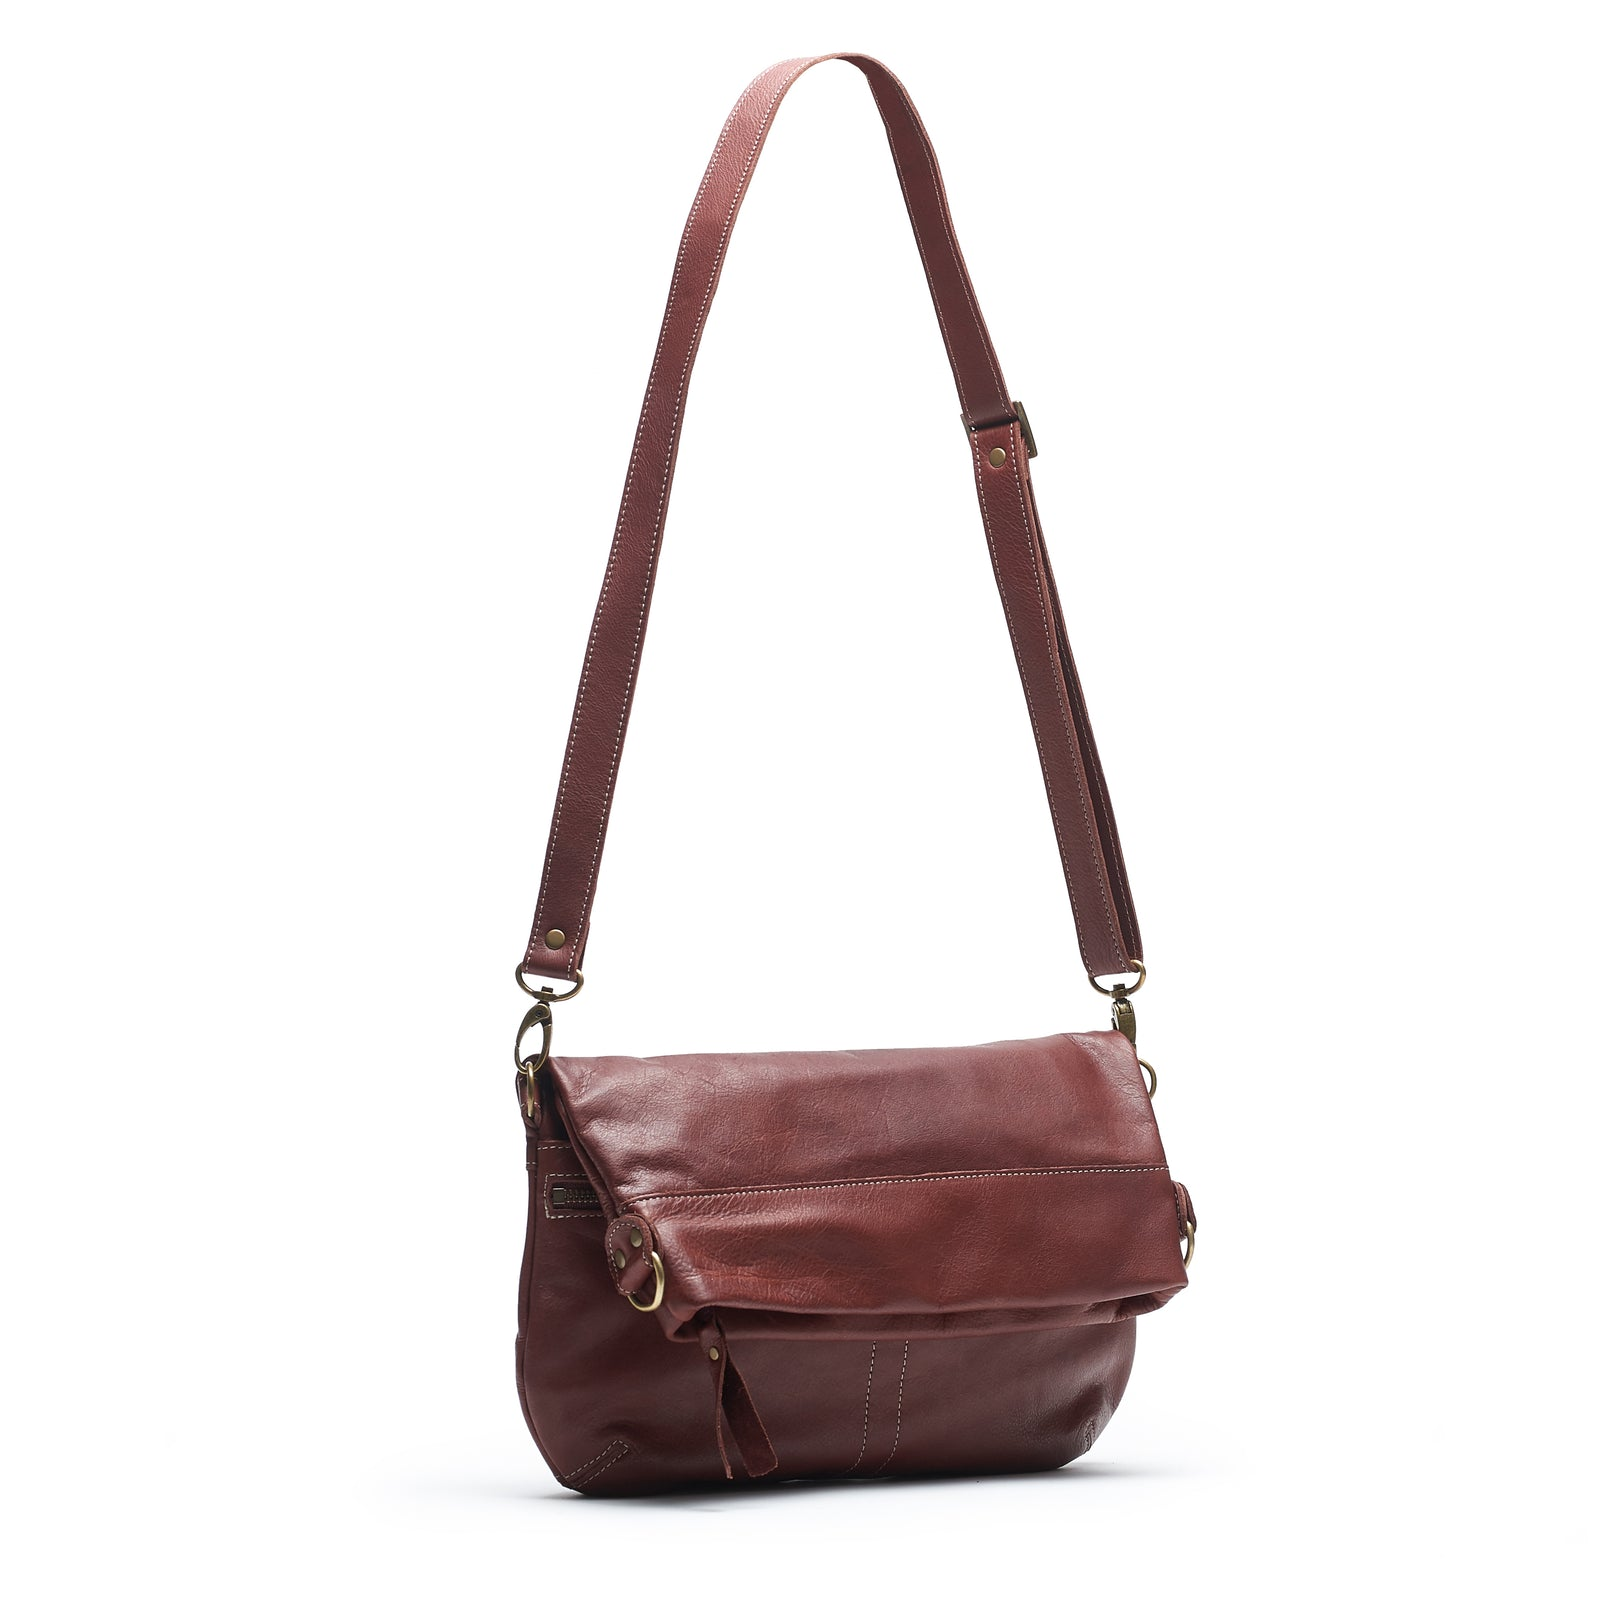 Mini-Lauren Crossbody - Merlot - Brynn Capella, Medium Crossbody